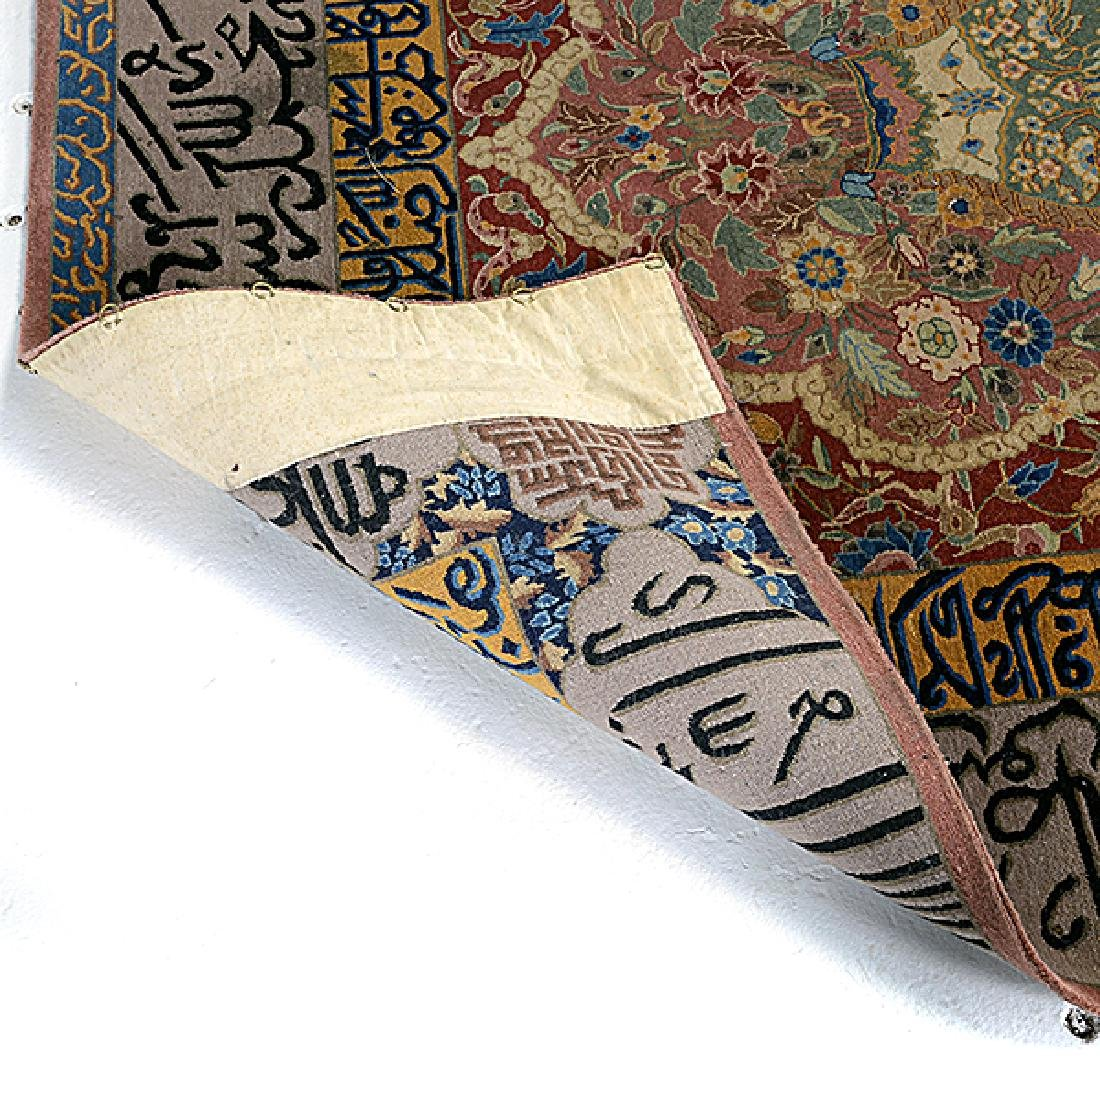 Islamic Figural Carpet Tapestry with Calligraphy: 5 - 3